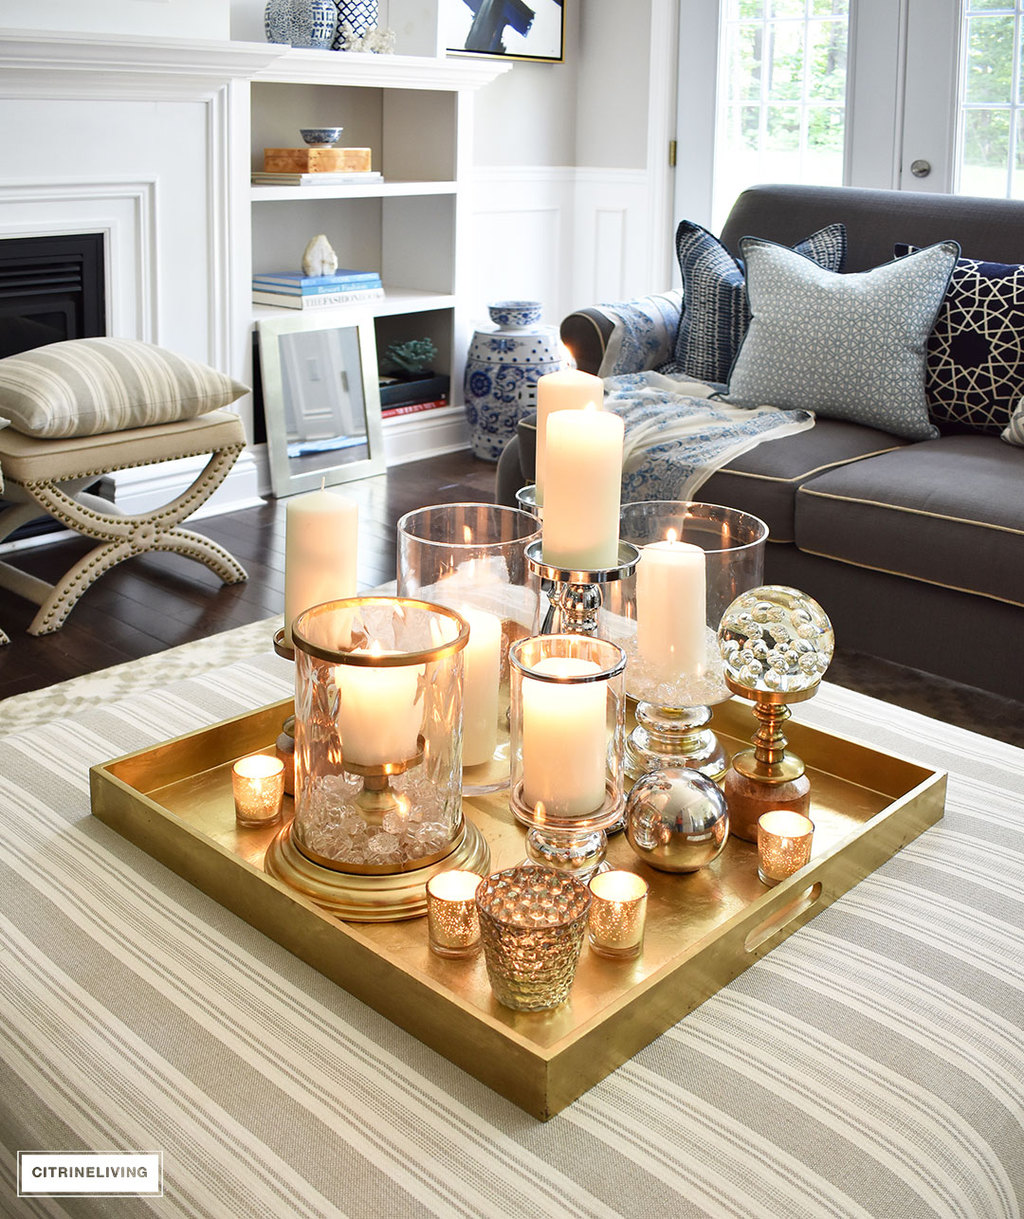 Make a visual statement with a clustered grouping of metal and glass  candleholders in varying heights